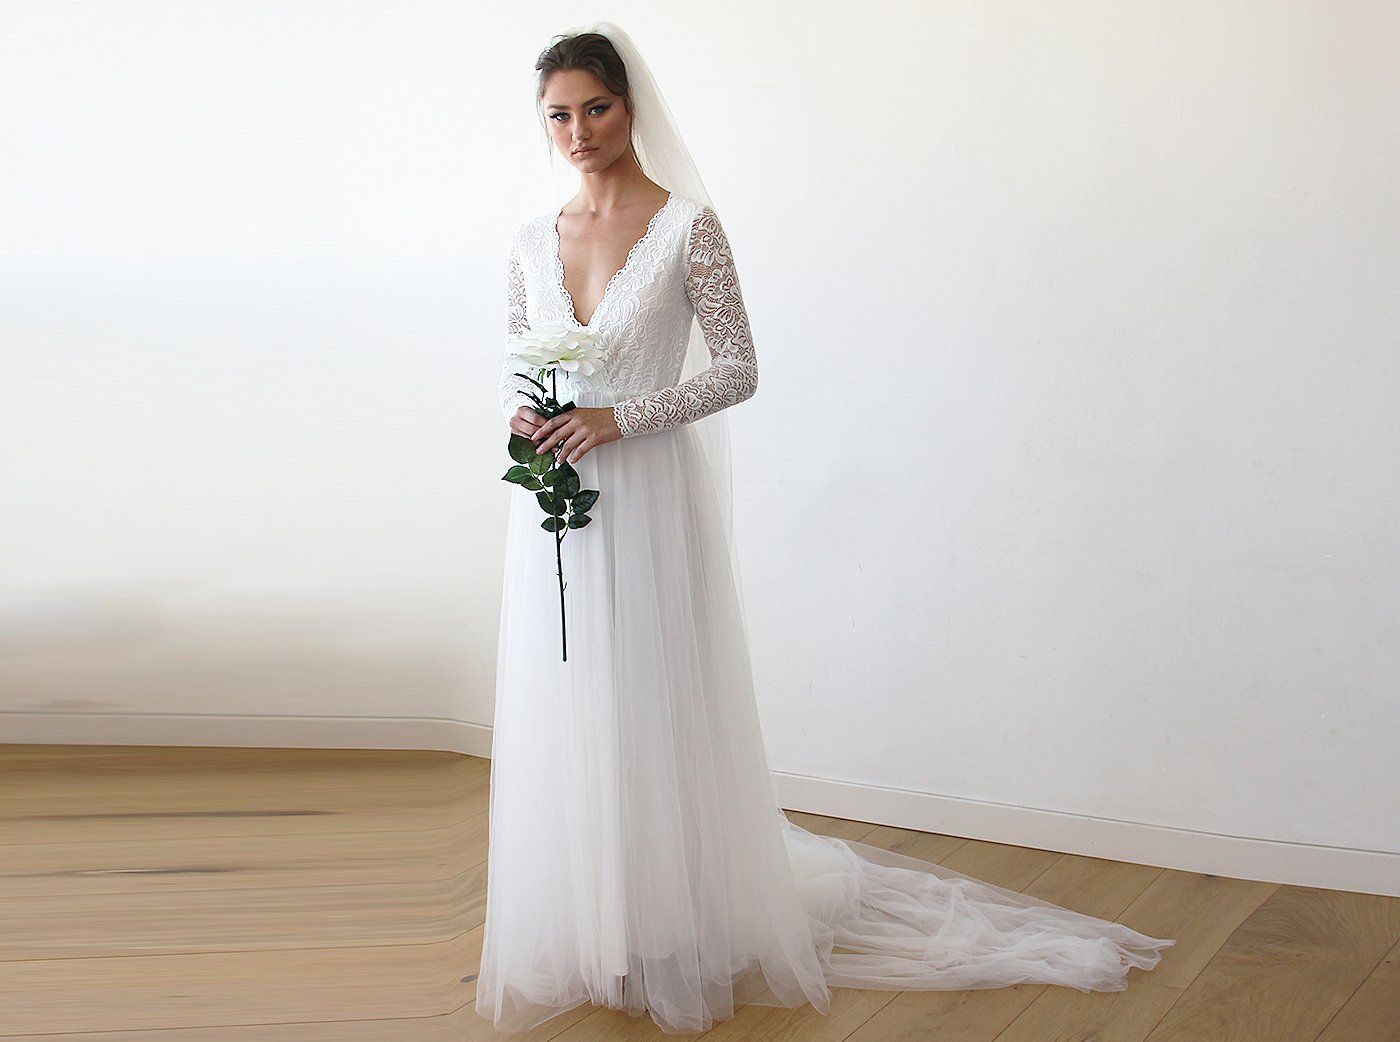 Cathedral length Veil - Train Tulle Veil 4024 - Blushfashion